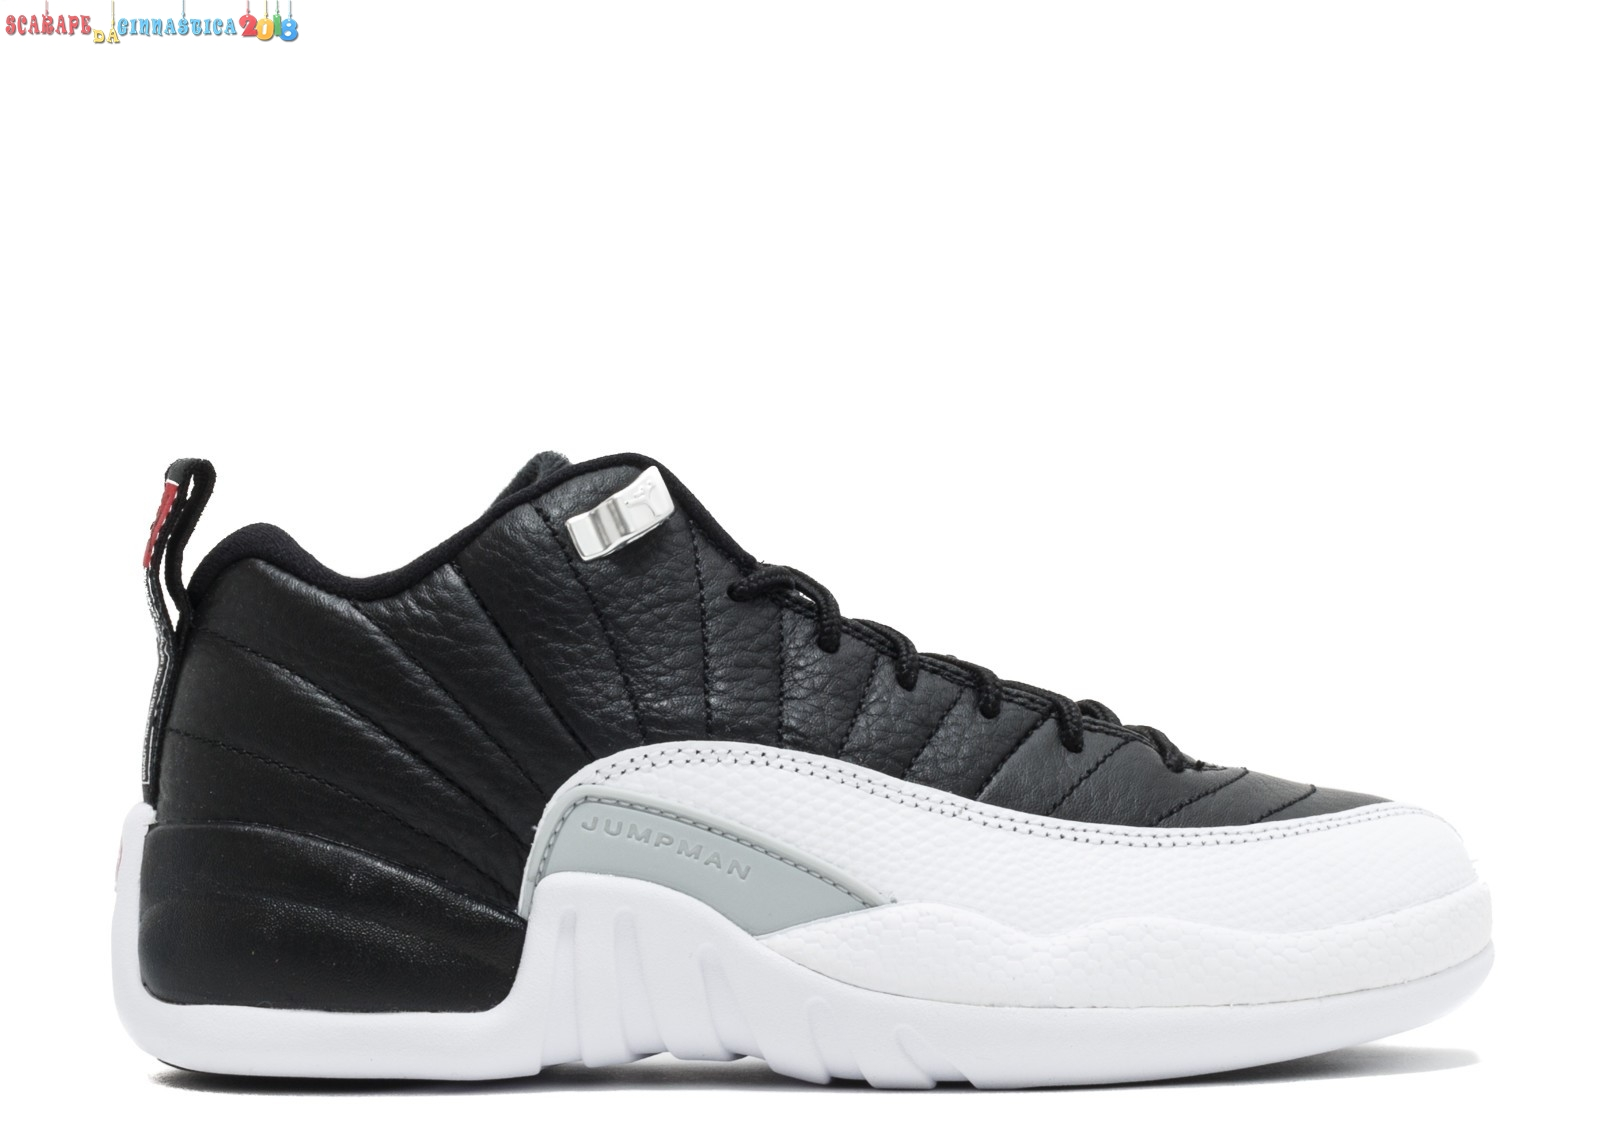 "Buy Air Jordan 12 Reto Low (Gs) ""Playoff"" Nero Bianca (308305-004) - scarpe basket migliori"